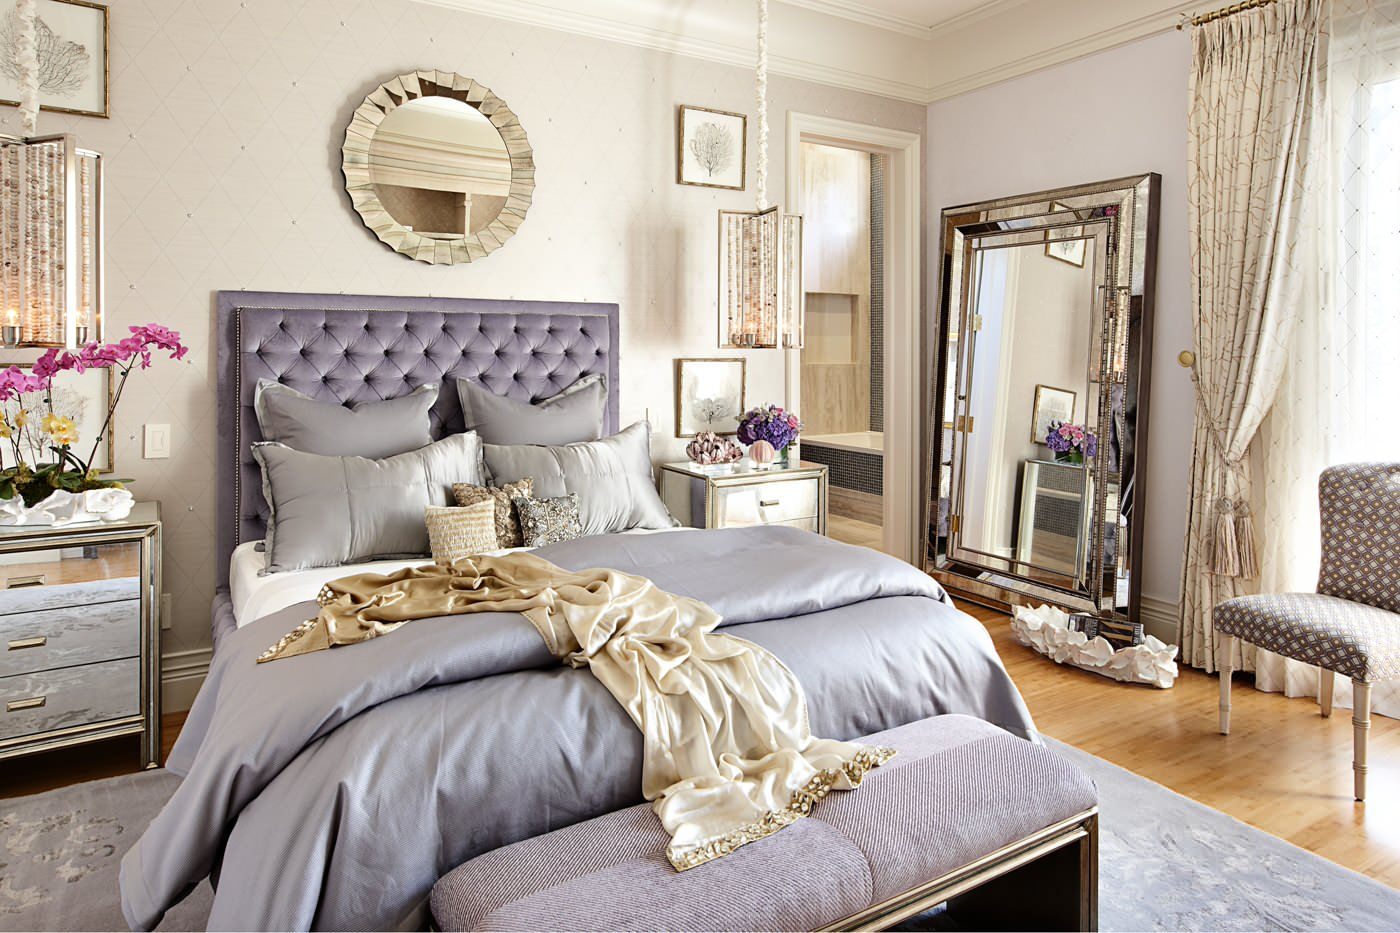 Design Adult Bed 3 steps to a girly adult bedroom shoproomideas las vegas purple princess idea shop room ideas mirror nightstand wall silver houzz